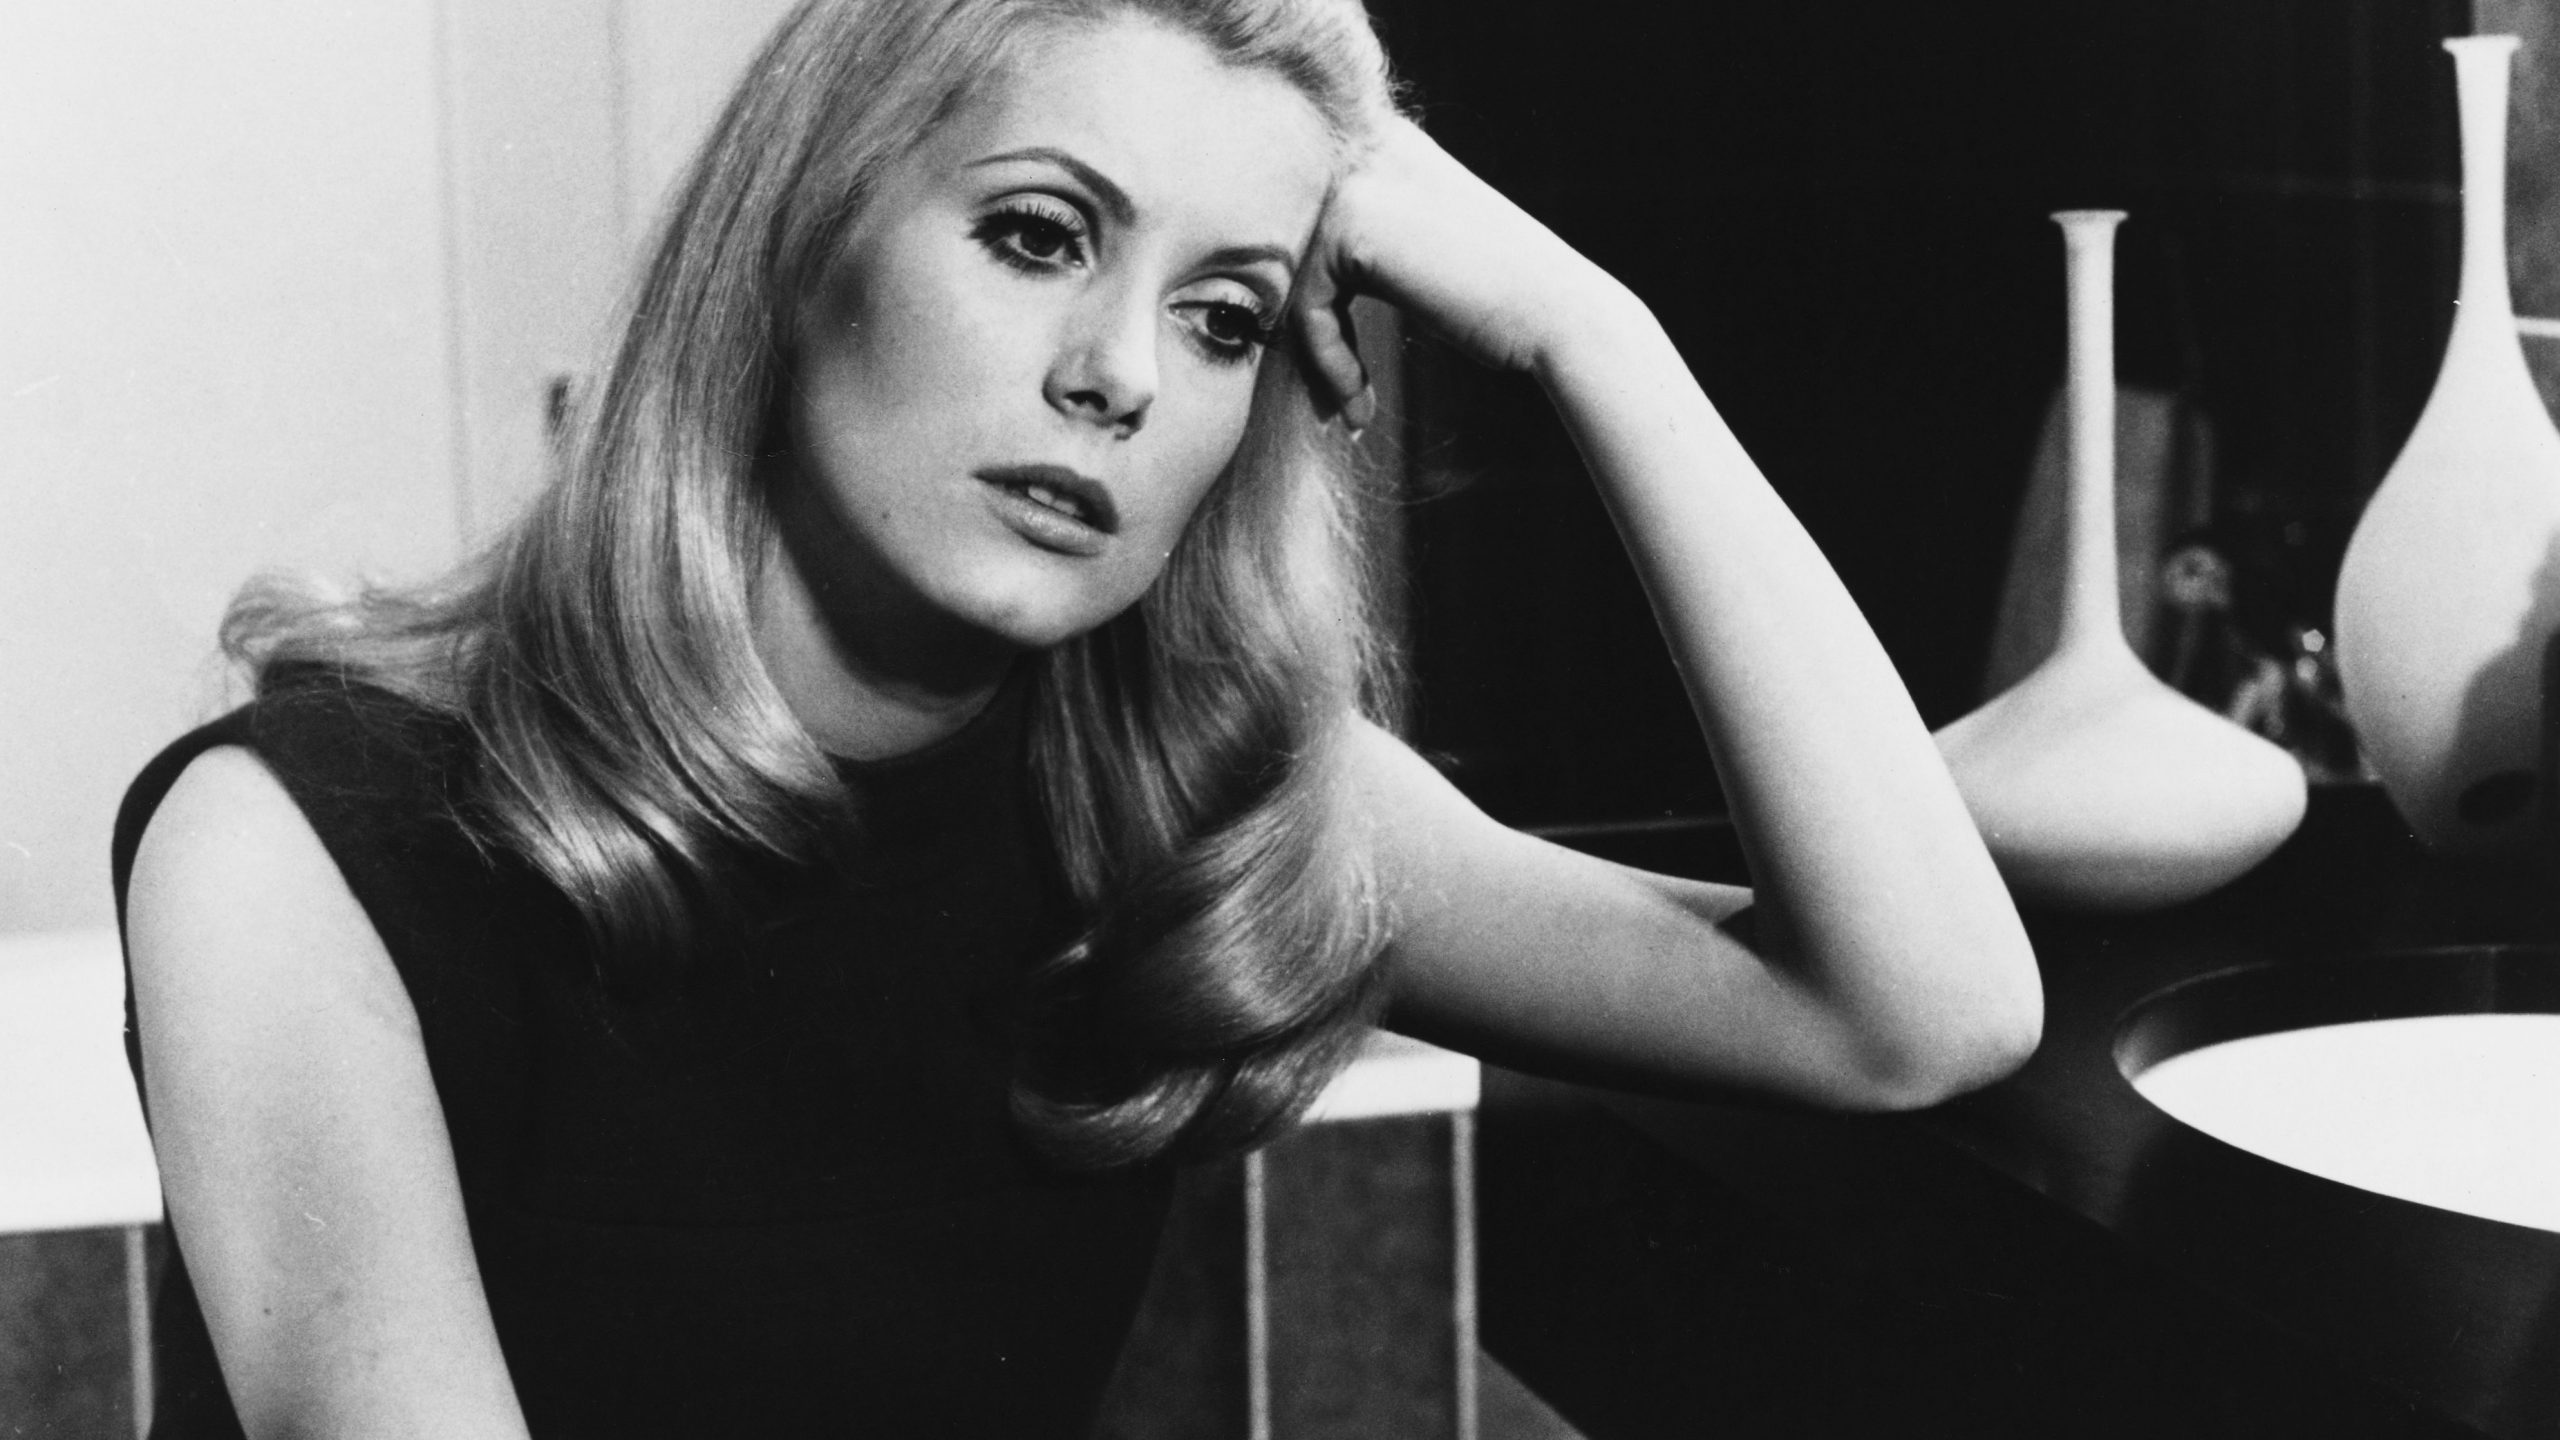 The Criterion Shelf: Starring Catherine Deneuve